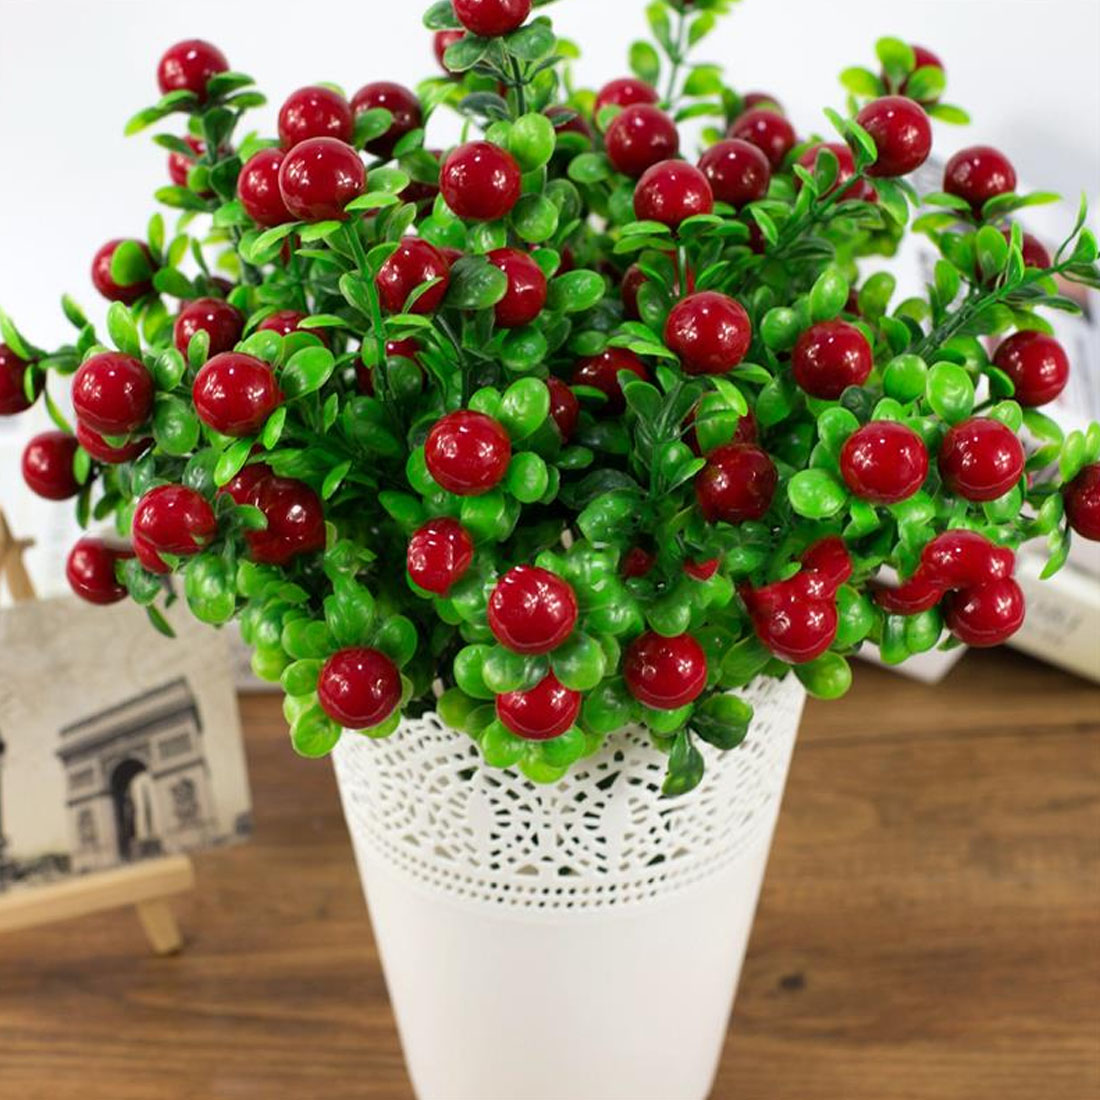 Party Decoration Artificial Fruit Small Berries Artificial Flowers Simulation Decorative Red Stamen Wedding Christmas DIY Craft in Artificial Fruits from Home Garden